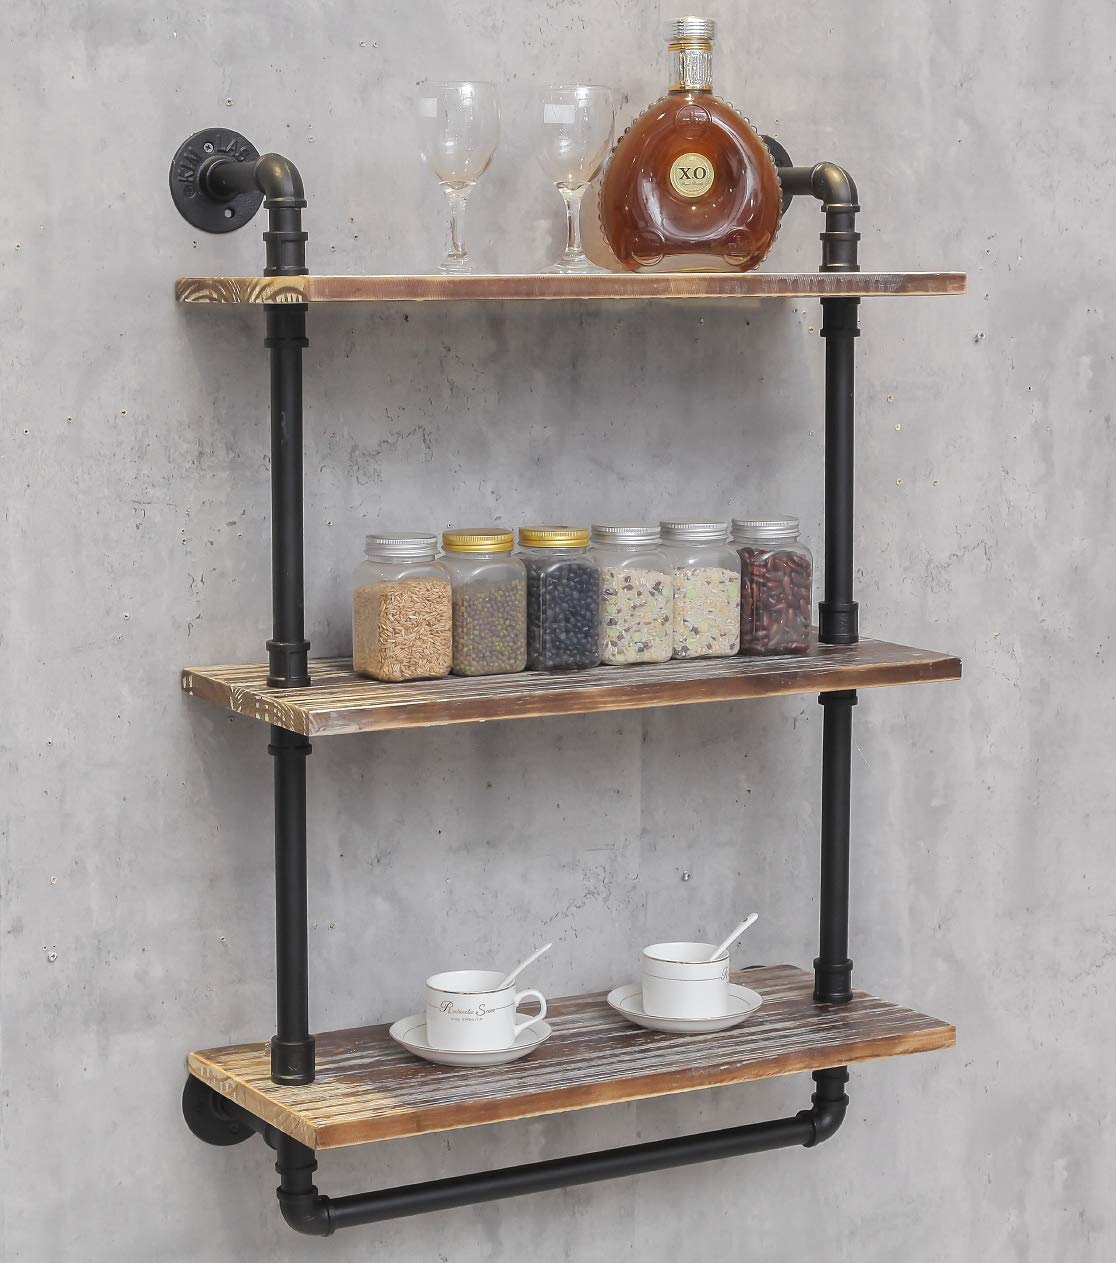 DOFURNILIM Industrial Retro Wall Mounted Iron Water Pipe Shelf – Hung Bracket – DIY Storage Shelving Bookshelf – Wood Shelf 24 Width Wall Bookcases